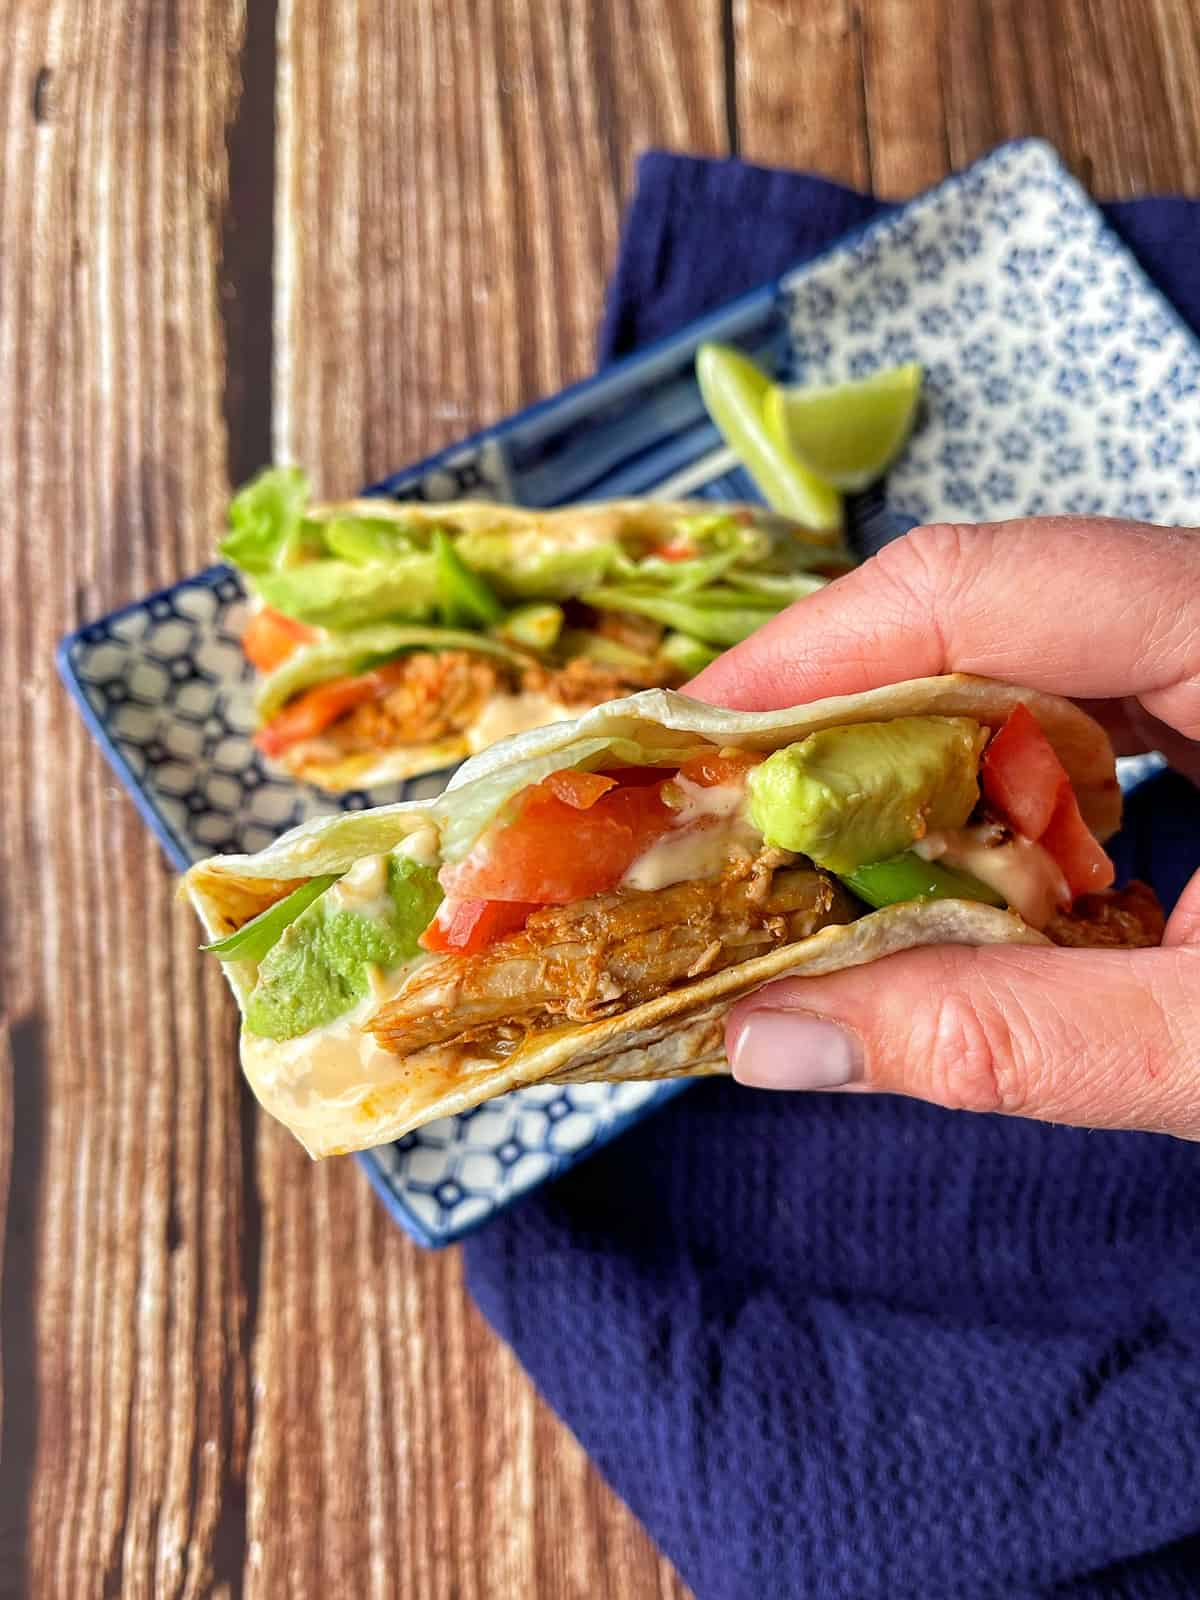 A hand holding a tortilla filled with pulled pork and salad.